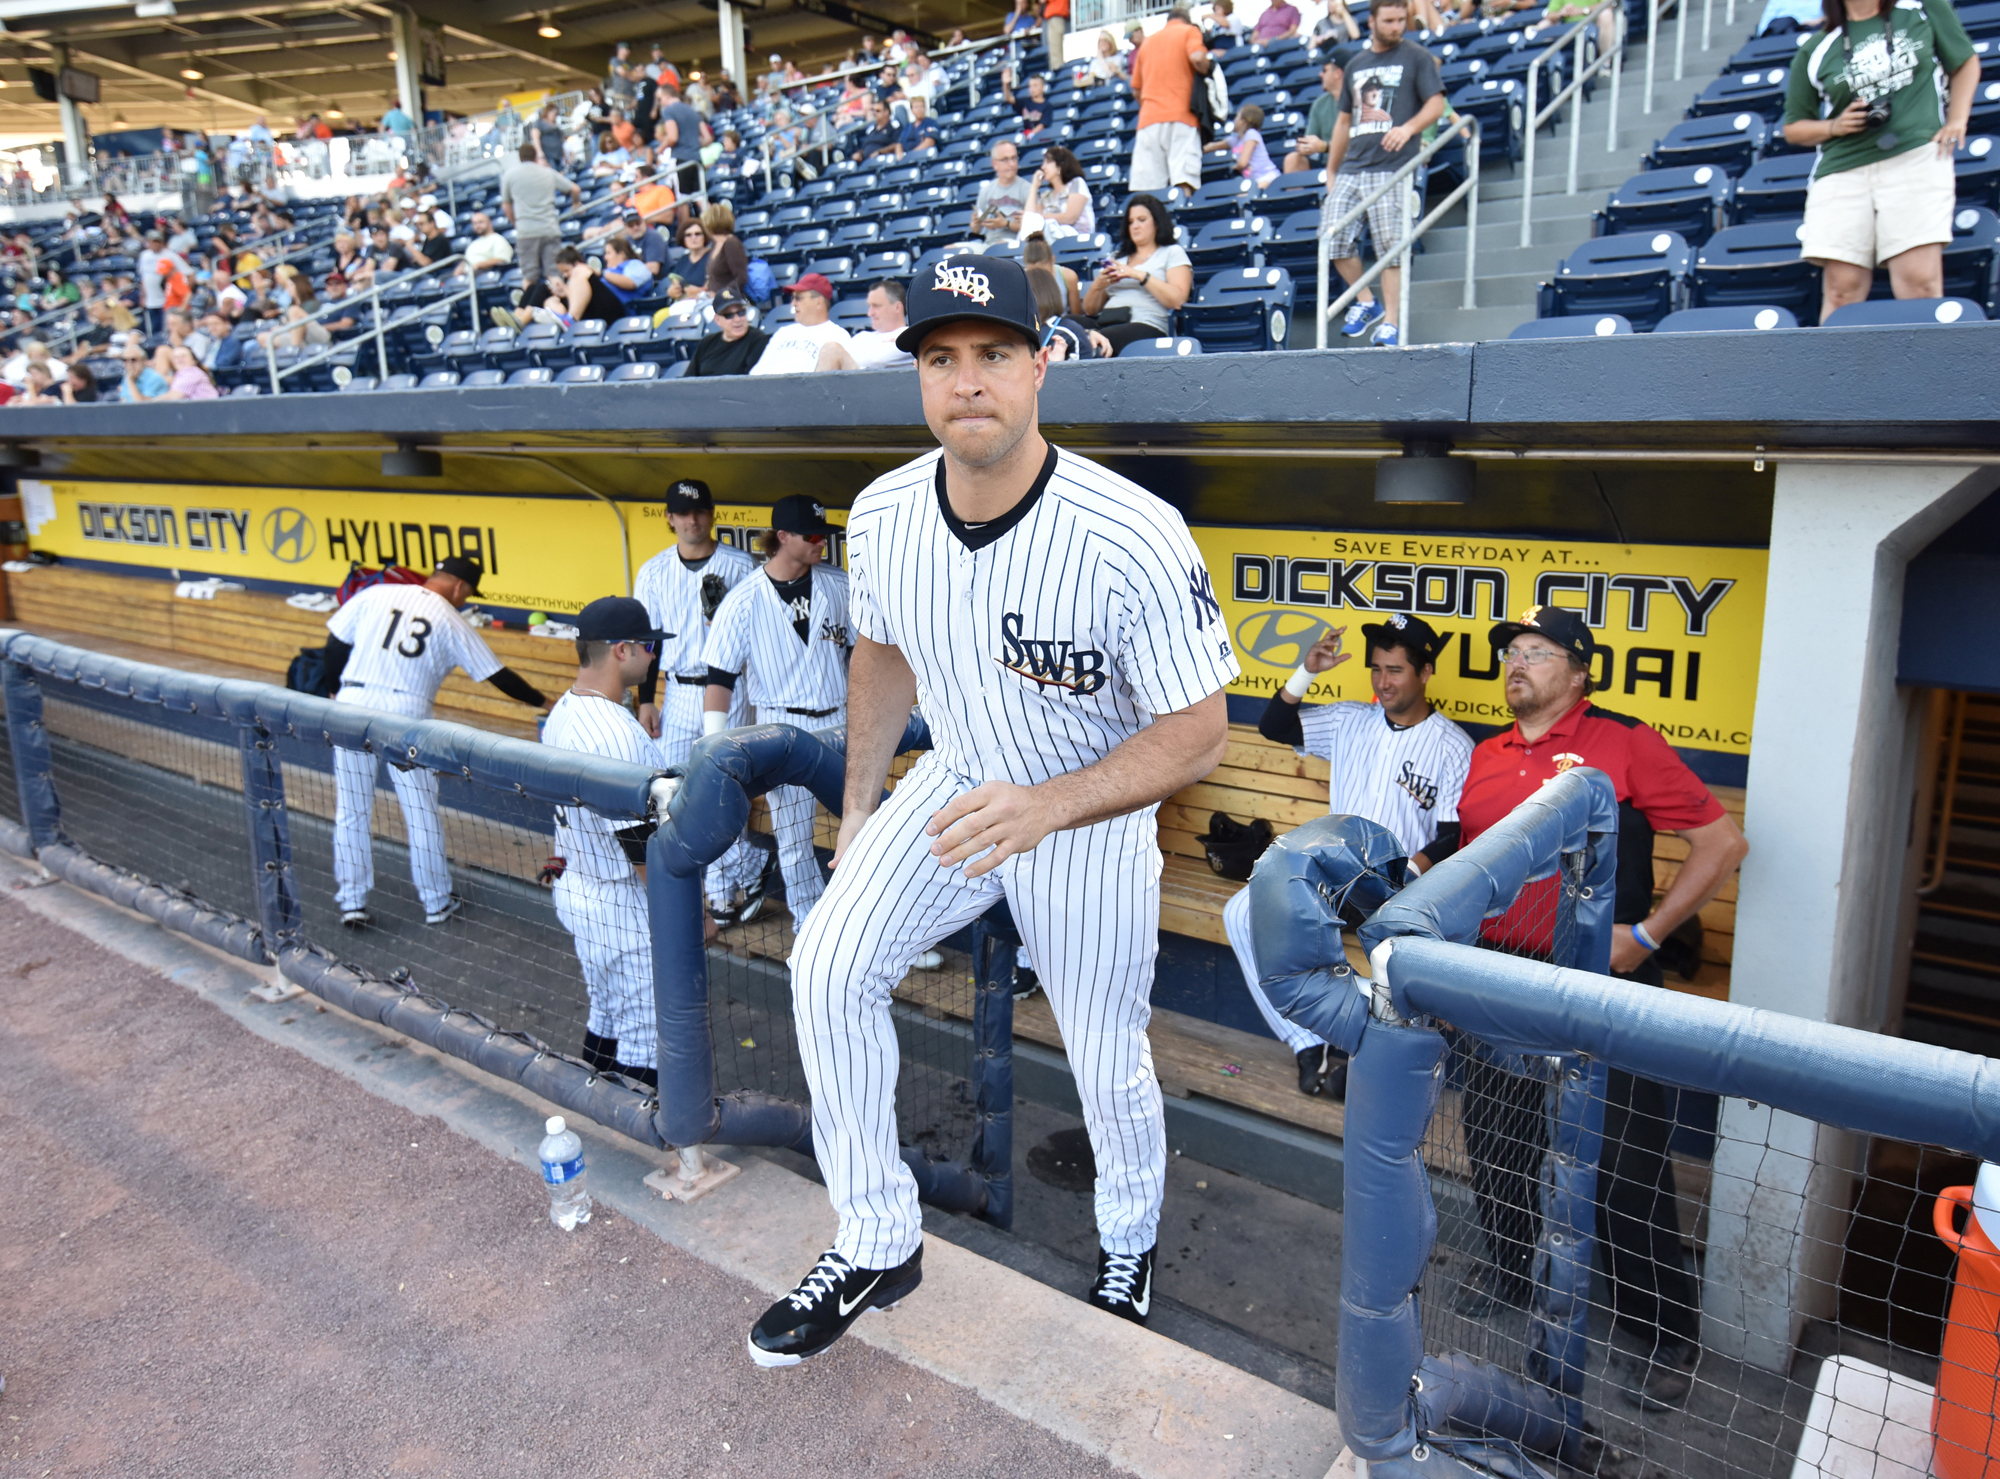 New York Yankees' Mark Teixeira, playing for the Scranton/Wilkes-Barre RailRiders, takes the field to warm up before the game against Toledo Mud Hens at PNC Field on Wednesday, June 22, 2016 in Moosic, Pa. Teixeira is on rehab assignment. (Jason Farmer/Th